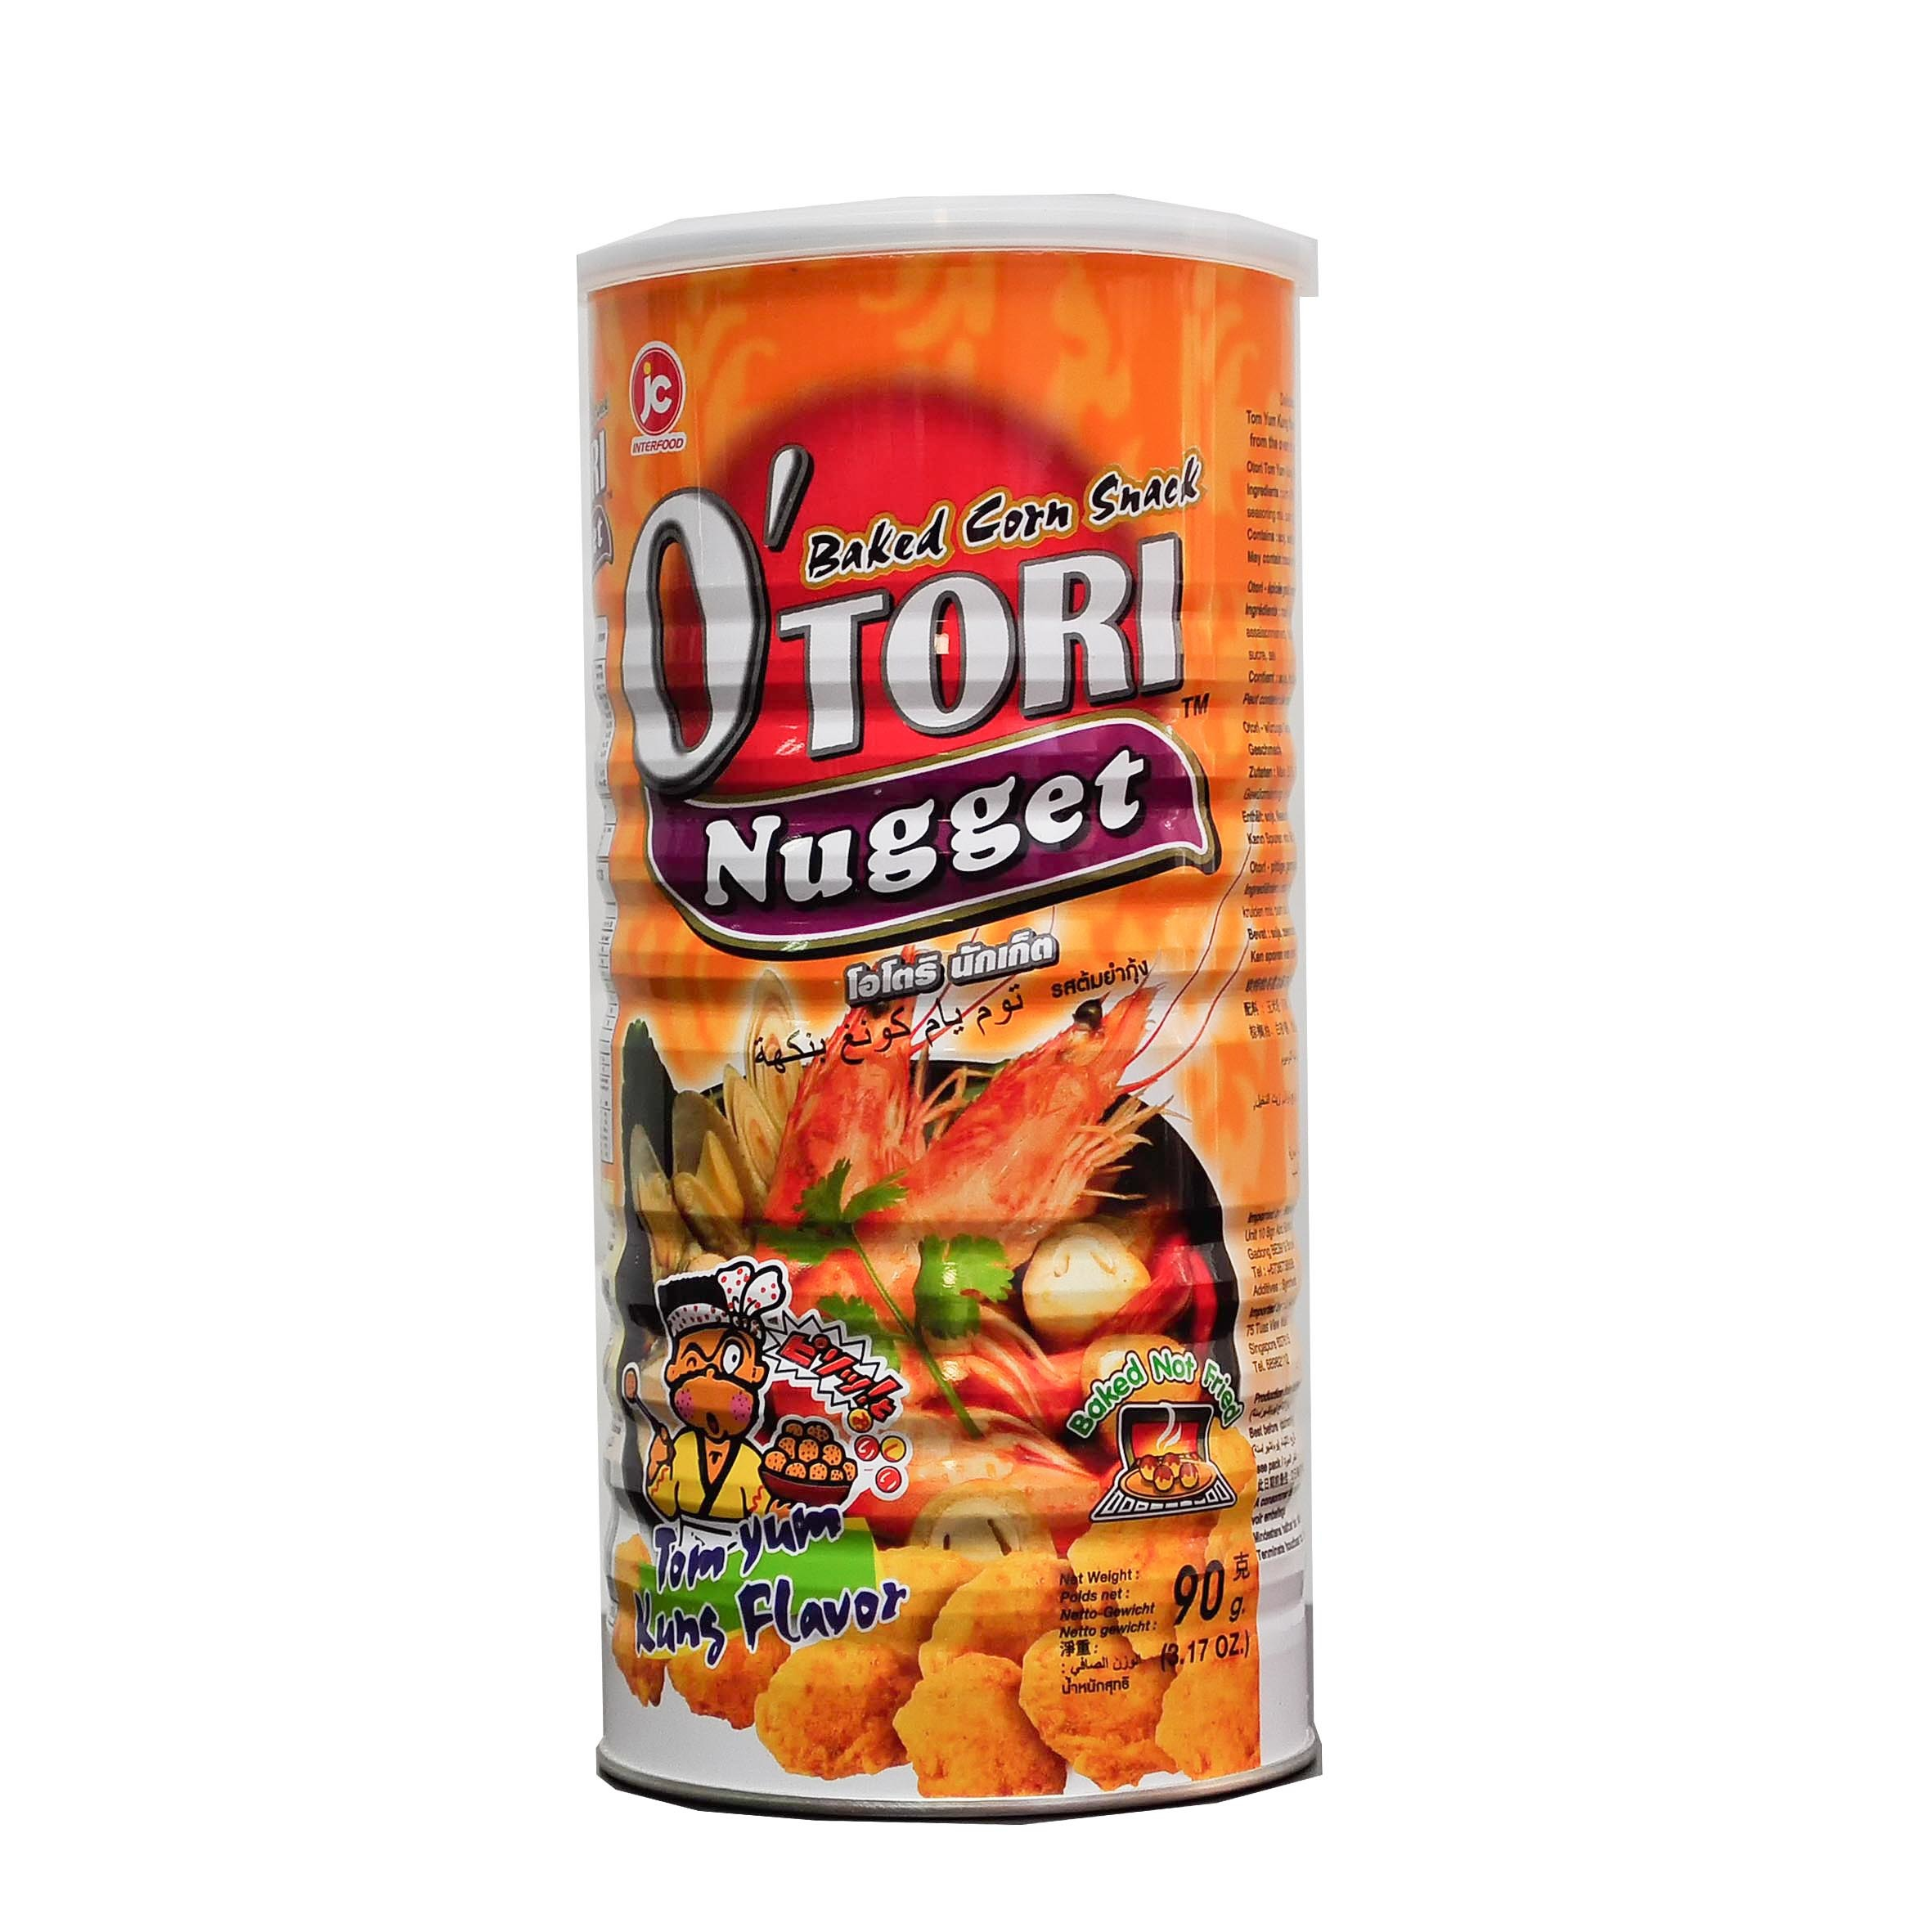 Otori Baked Corn SNack Nugget Ton Yum Kung Flavour Front.jpg